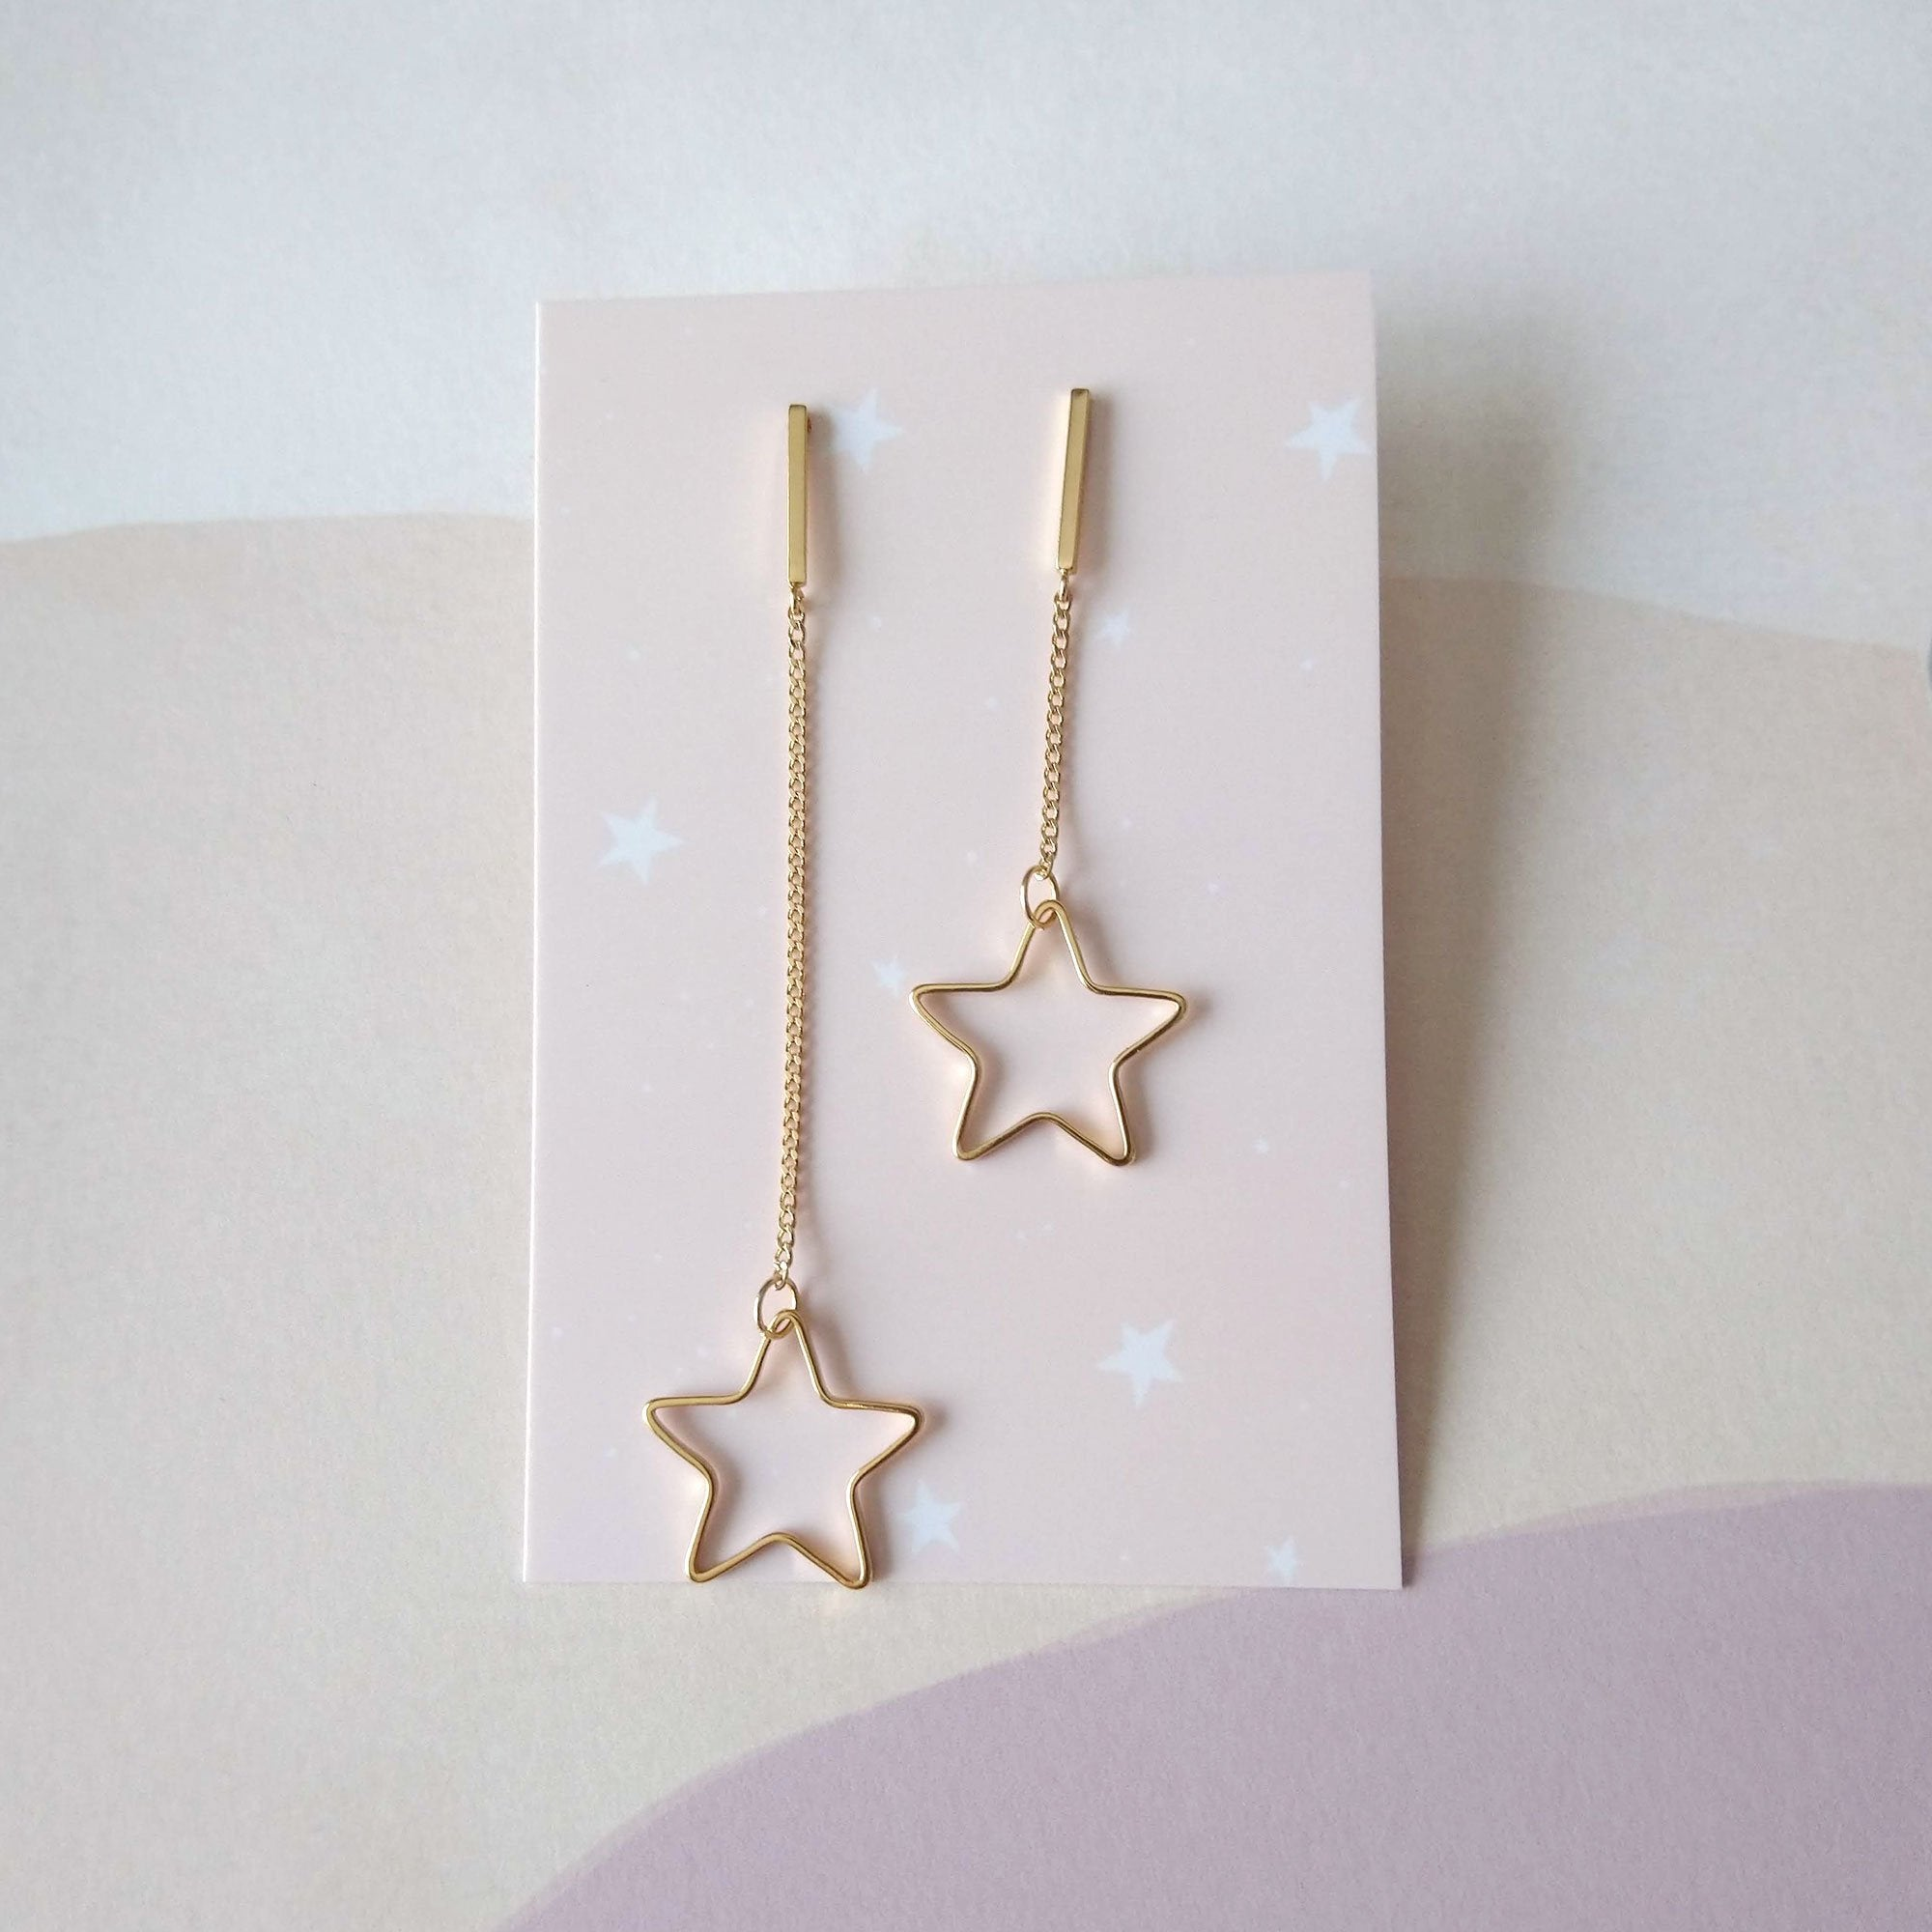 asymmetrical earrings gold stars